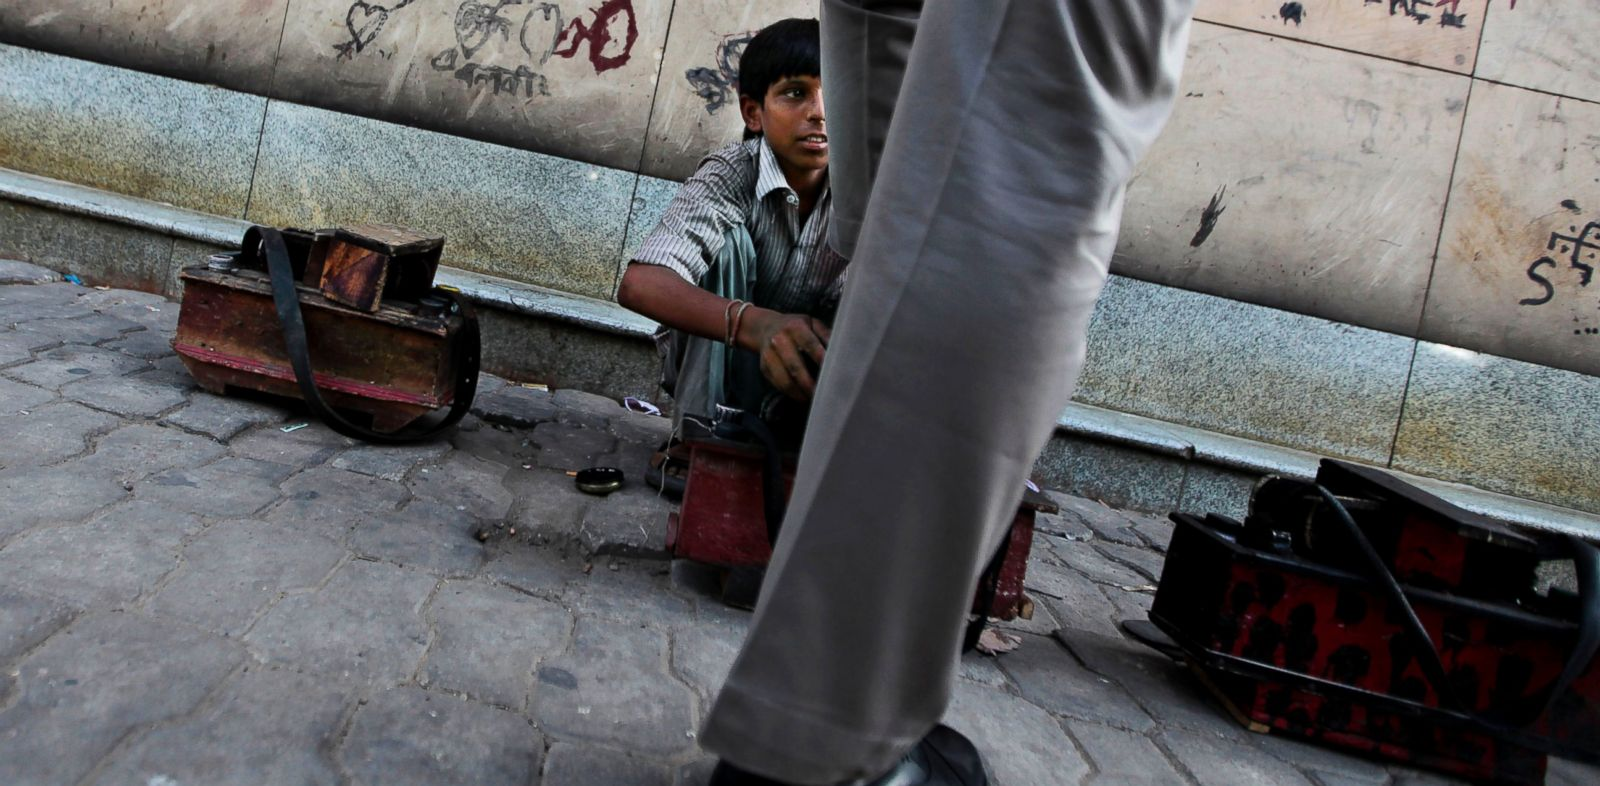 PHOTO: A young Indian boy polishes a shoe on a pavement on World Day Against Child Labor in New Delhi, India, June 12, 2012.